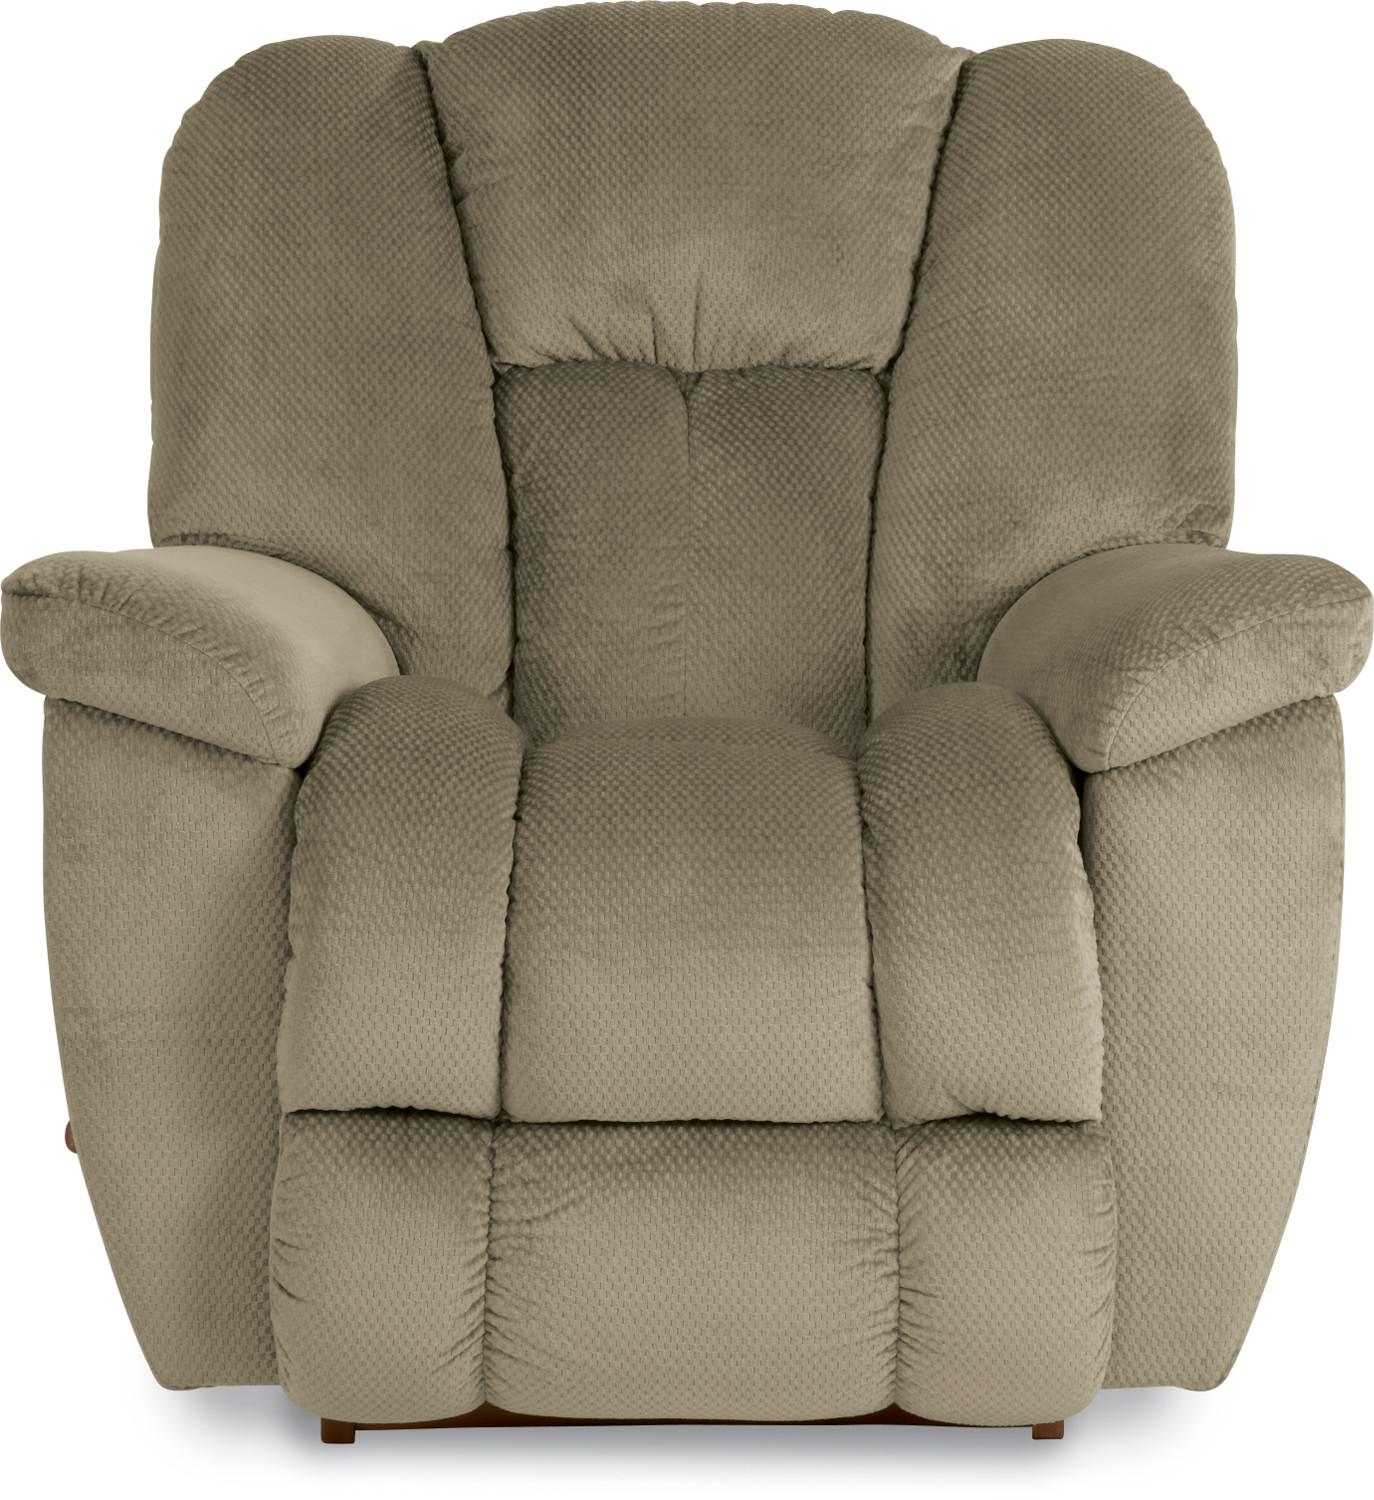 Maverick Rocker Recliner by La-Z-Boy at Bennett's Furniture and Mattresses